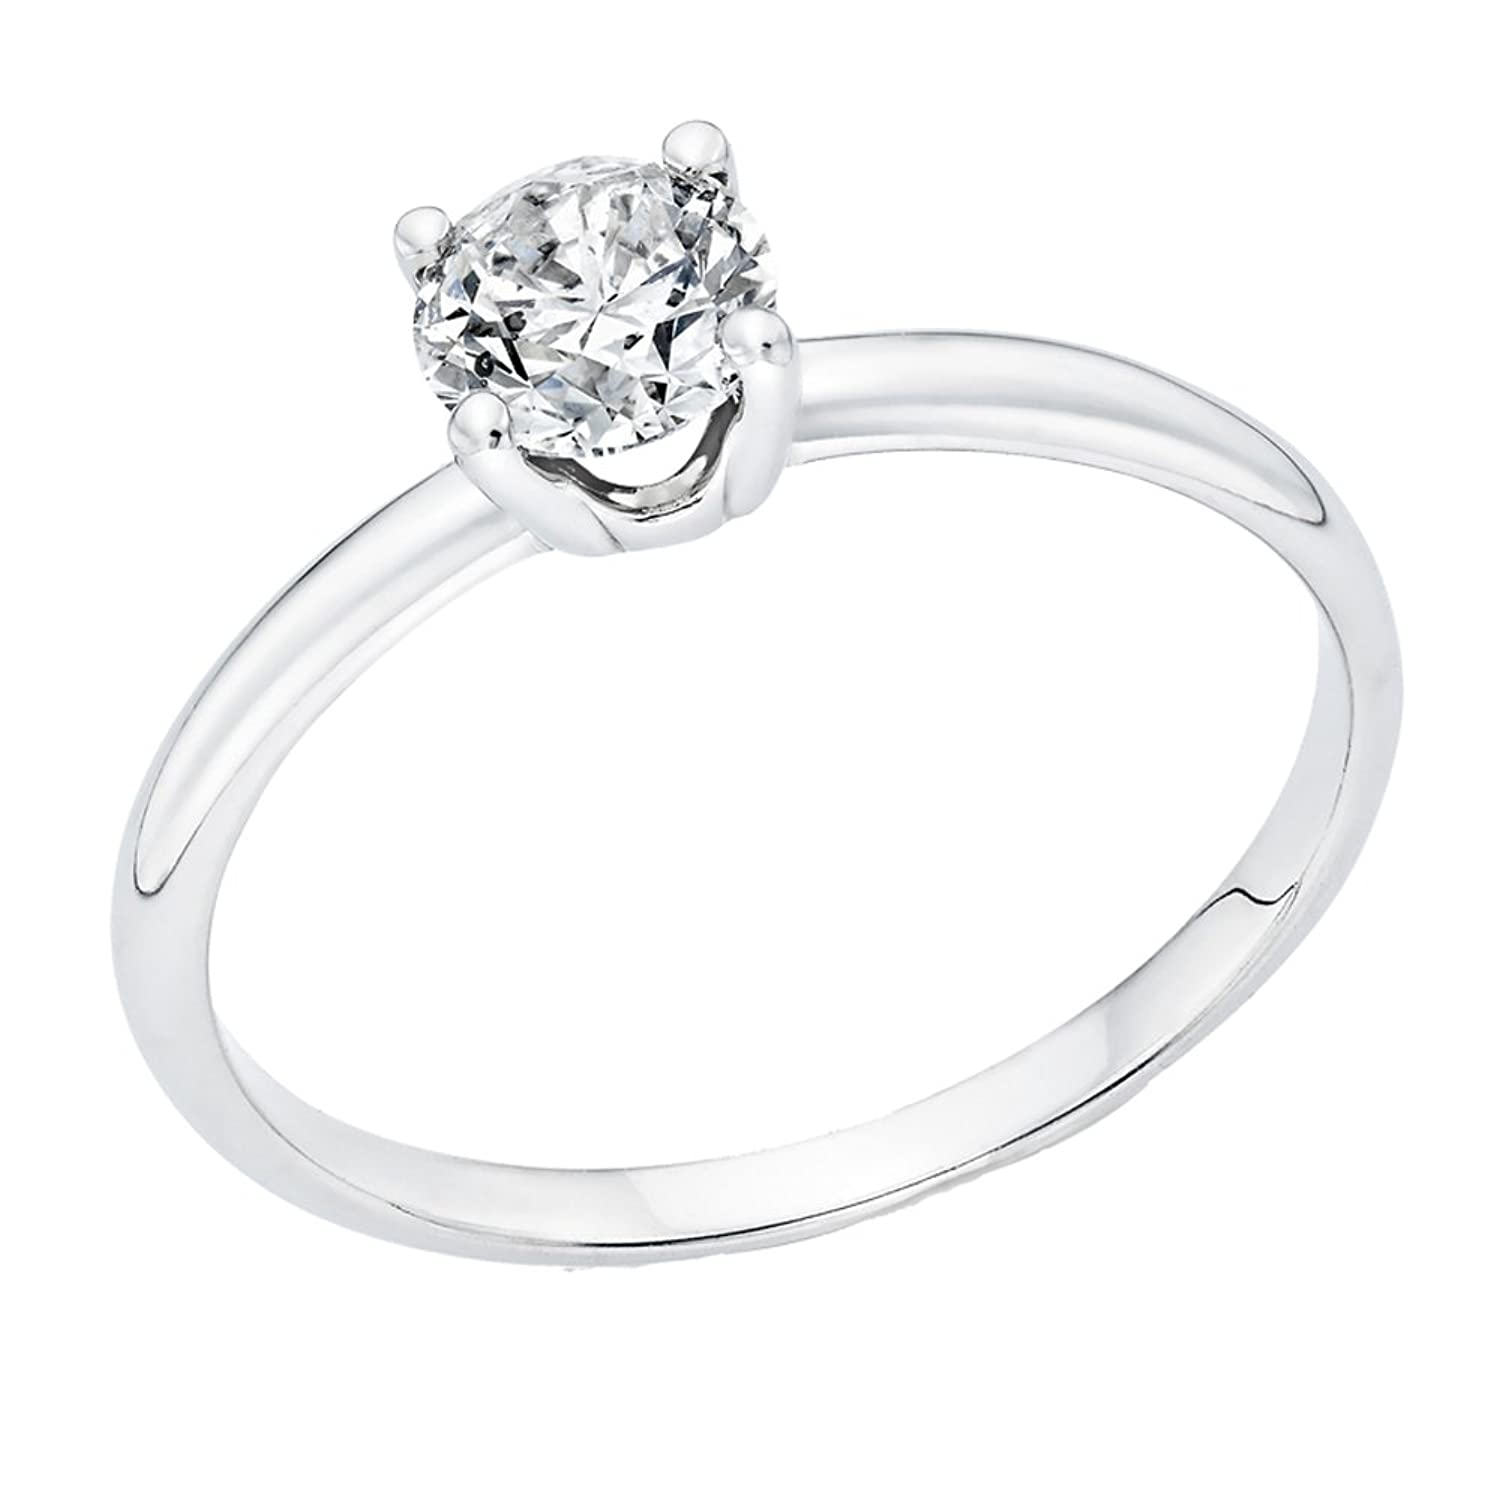 1/2 ct IGI Certified Diamond Engagement Ring in 14K White Gold (1/2 ct, L-M Color, I1-I2 Clarity)